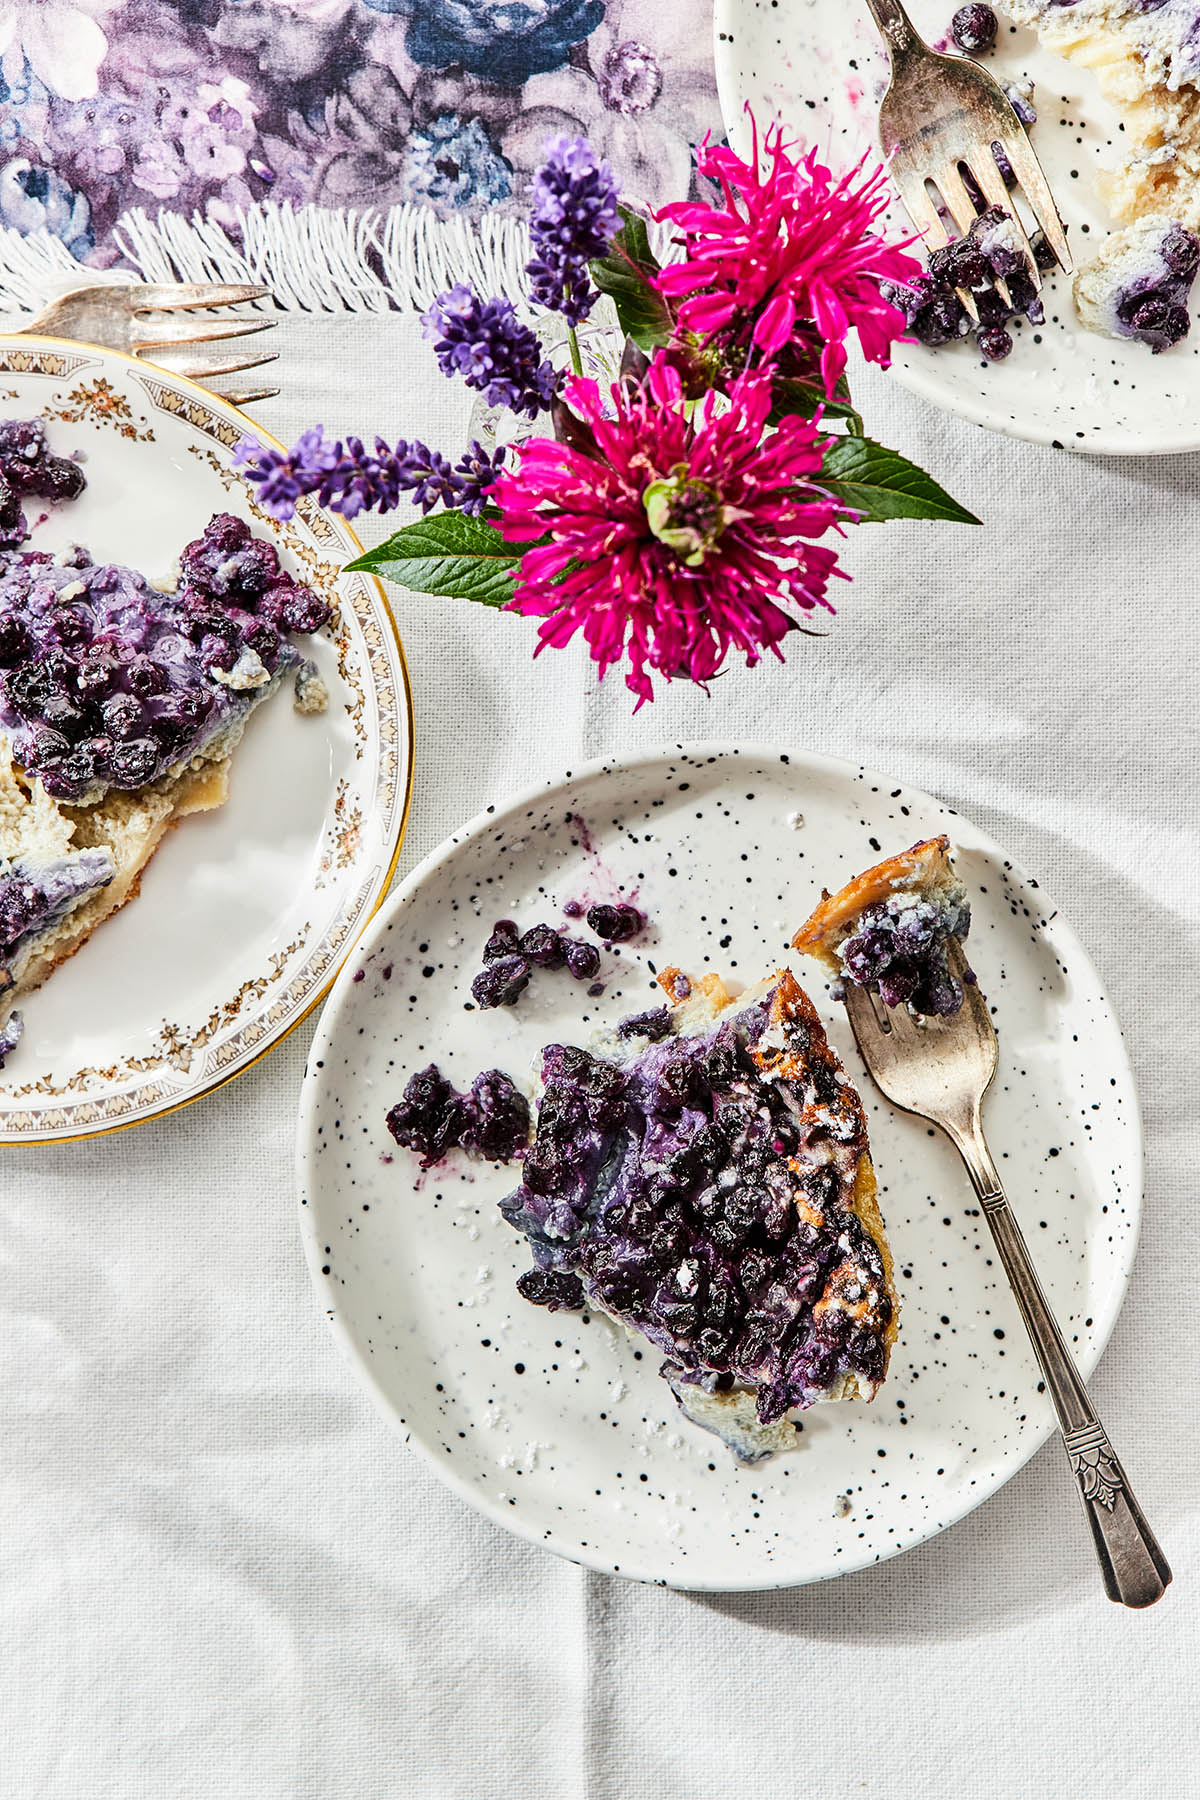 servings of blueberry clafoutis on dessert plates on a white tablecloth with a small vase of flowers.